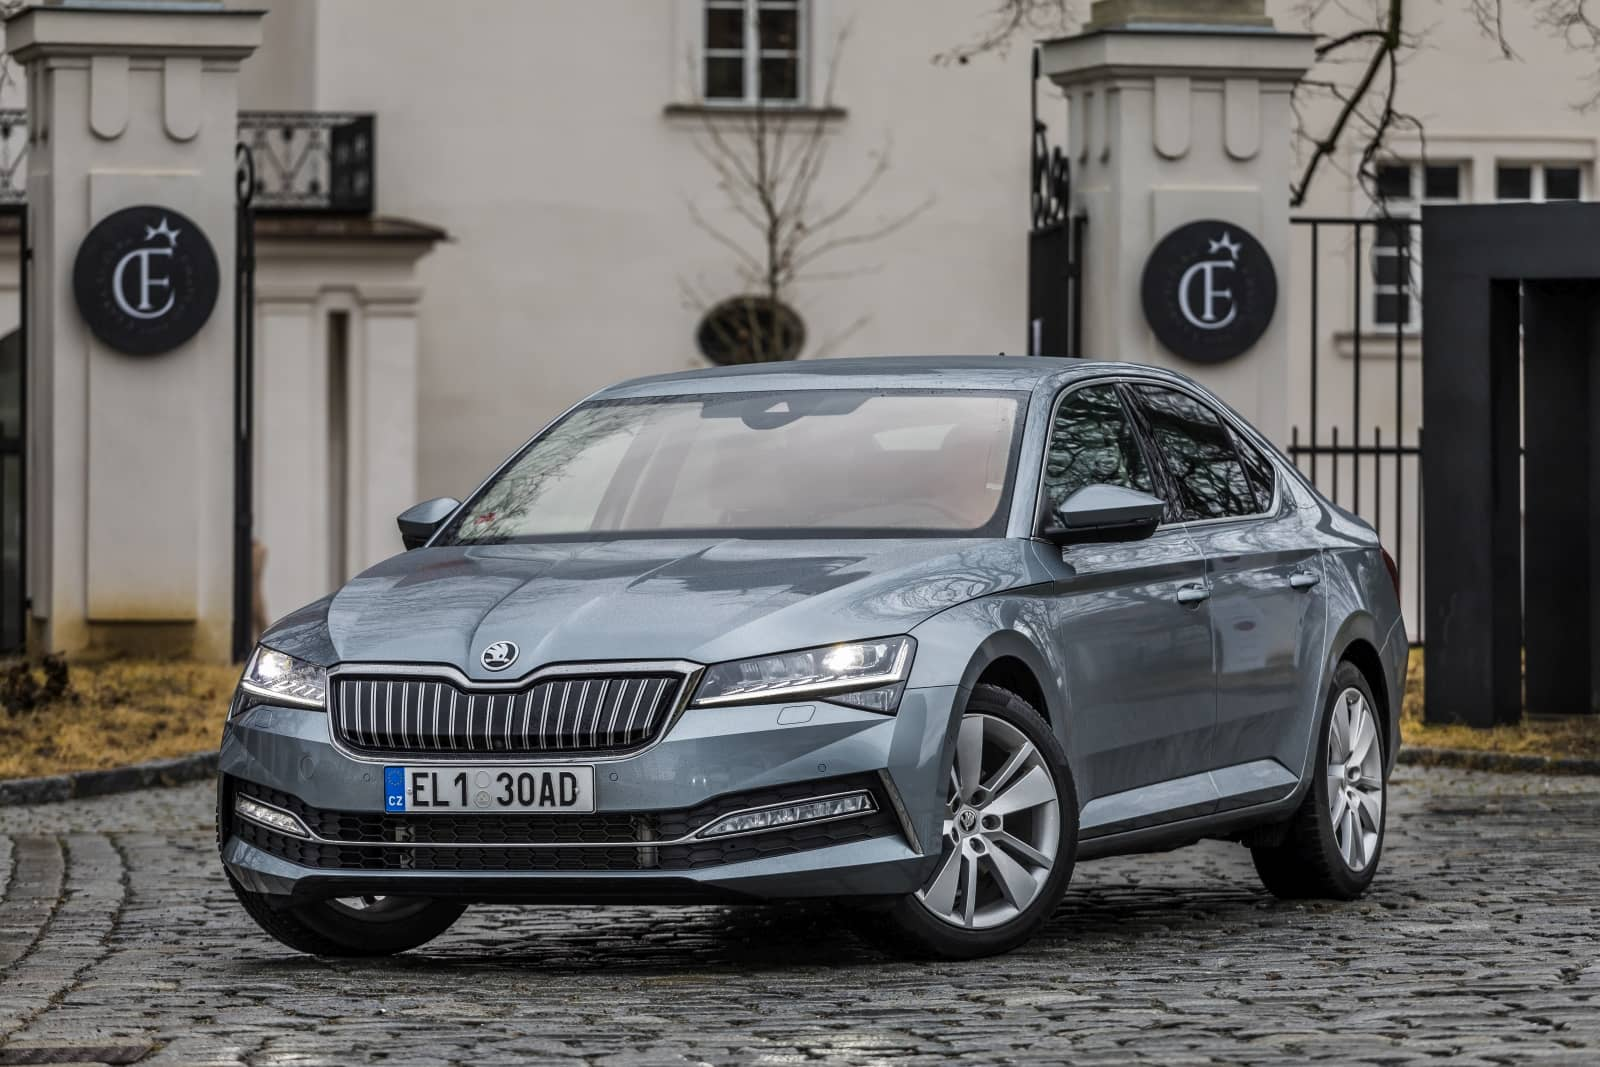 aDMB2020_Superb iV vs. Passat GTE-9840